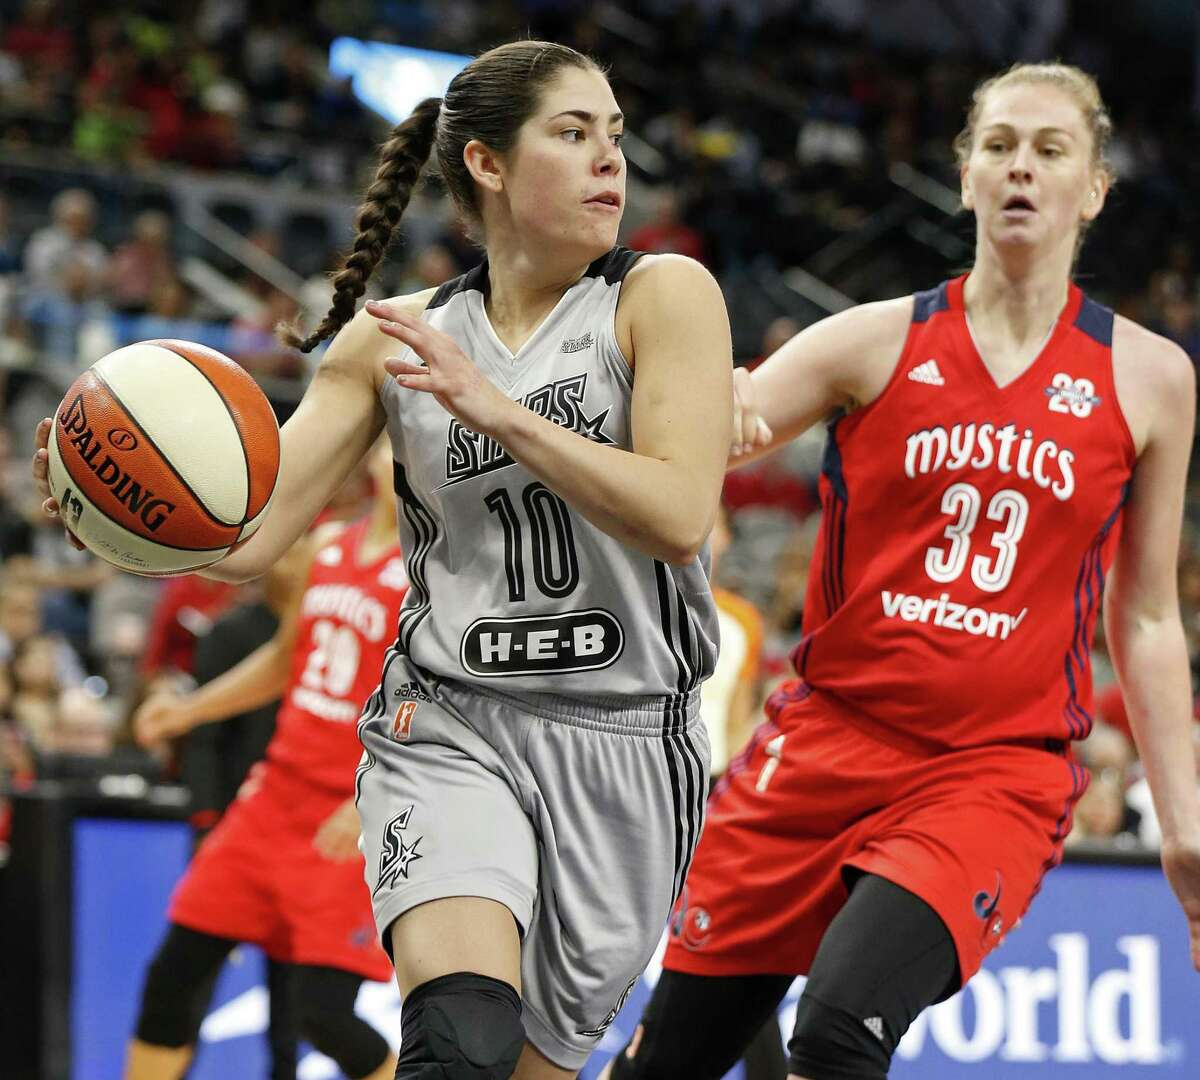 The Stars' Kelsey Plum looks to pass around Emma Meesseman. Plum scored nine points and had a career-high 12 assists.